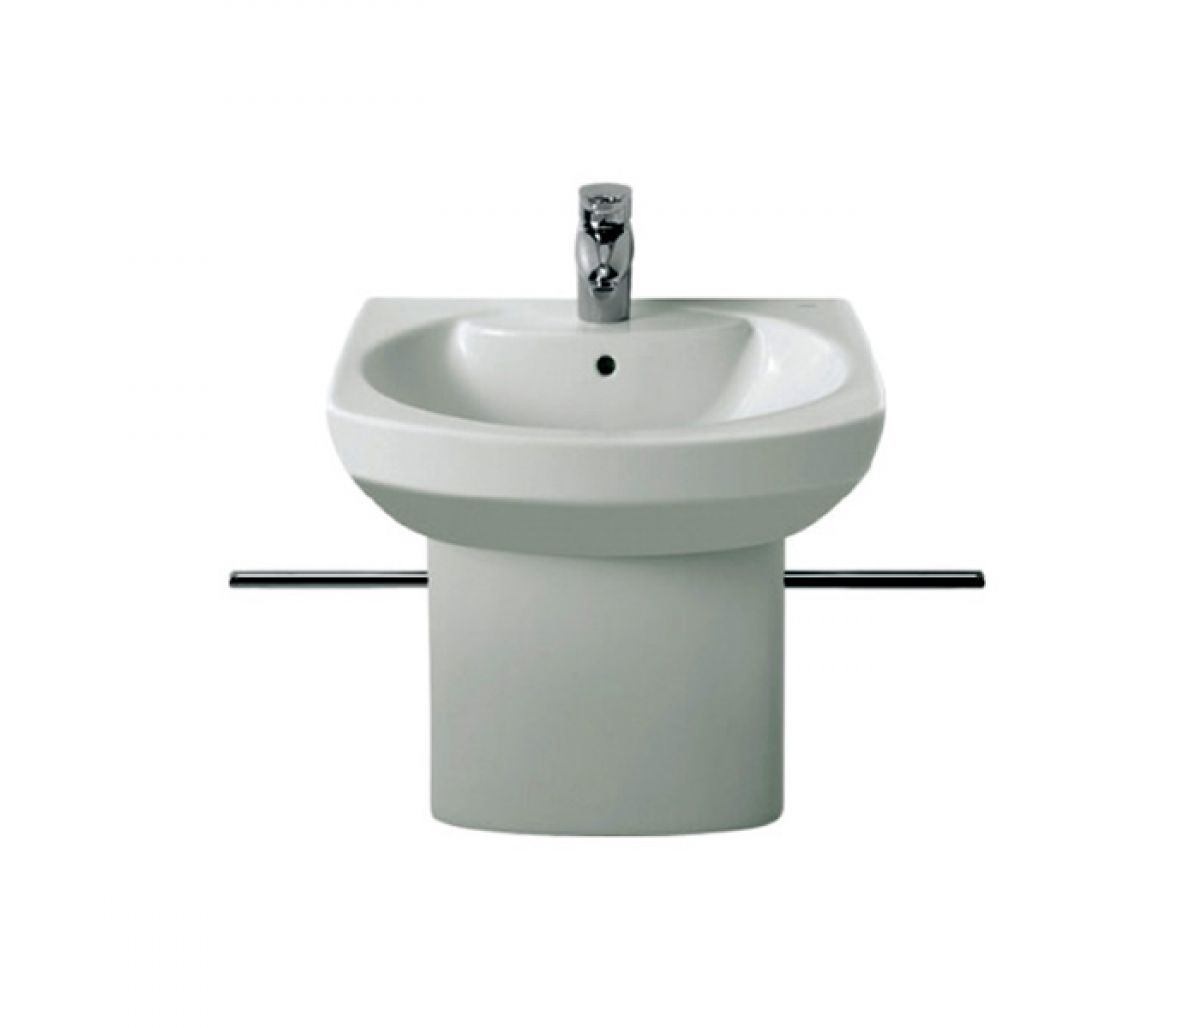 roca senso compact 550mm hand washbasin - Roca Wash Basin